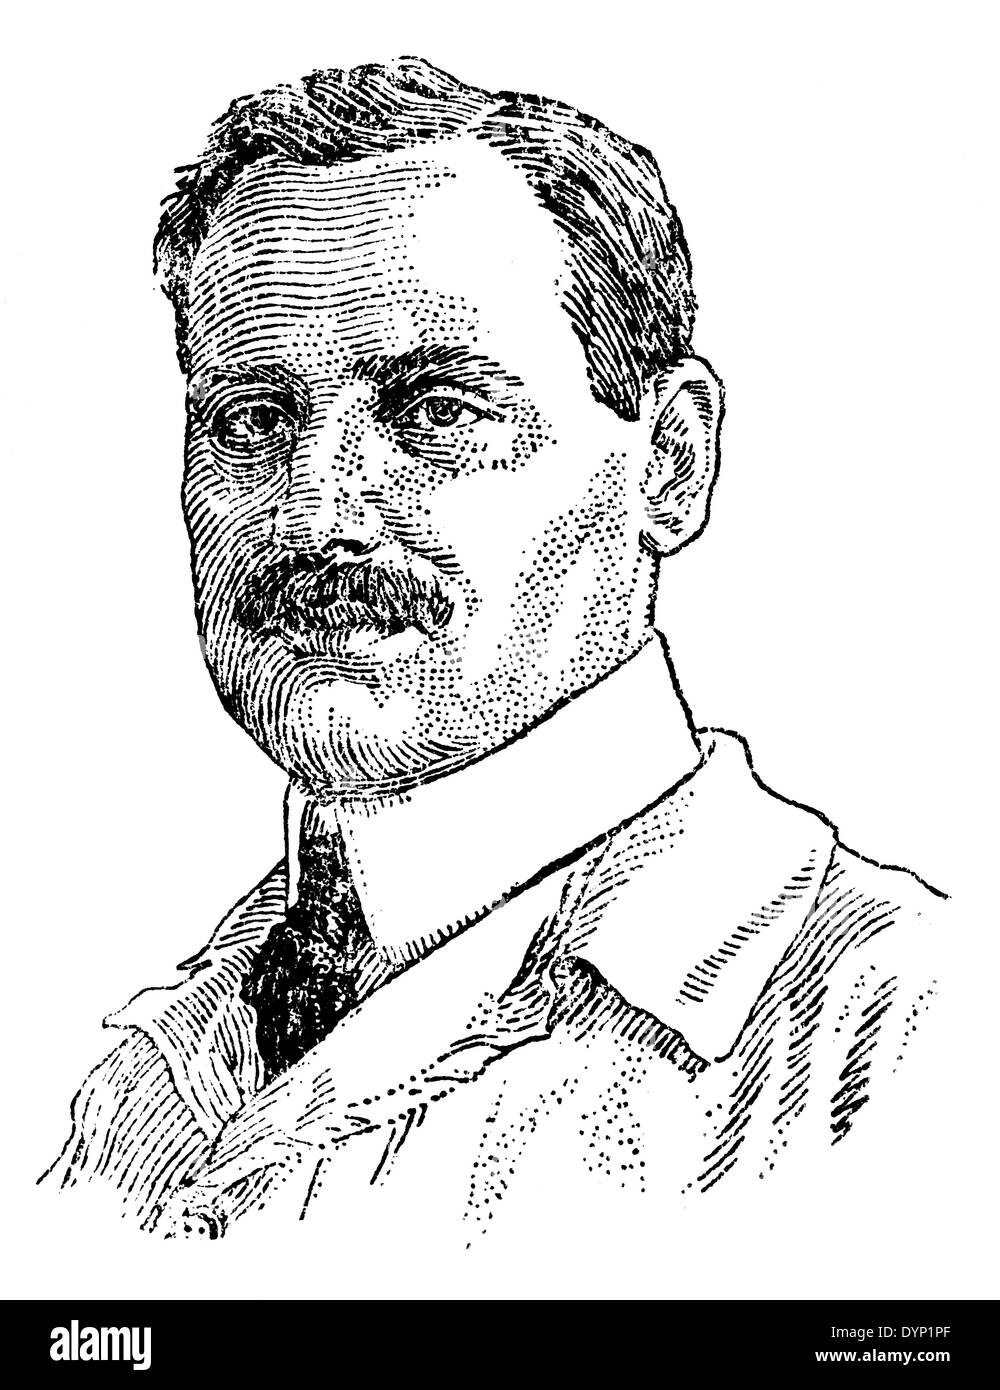 August Paul von Wassermann (1866-1925), German bacteriologist and hygienist, illustration from Soviet encyclopedia, - Stock Image